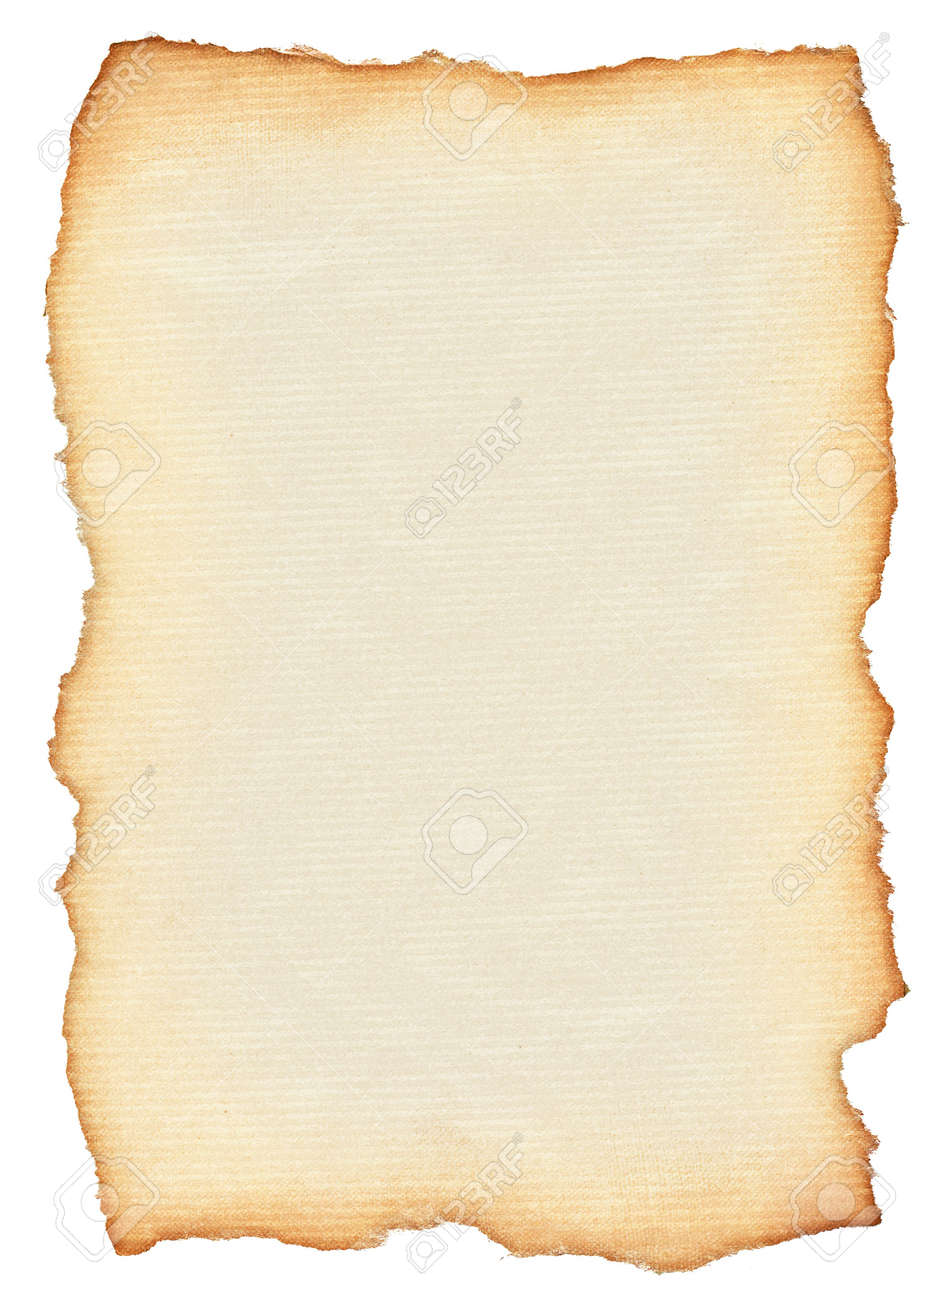 Ongekend Scroll Isolated On Pure White Background, Edges Are Very Rough KS-81